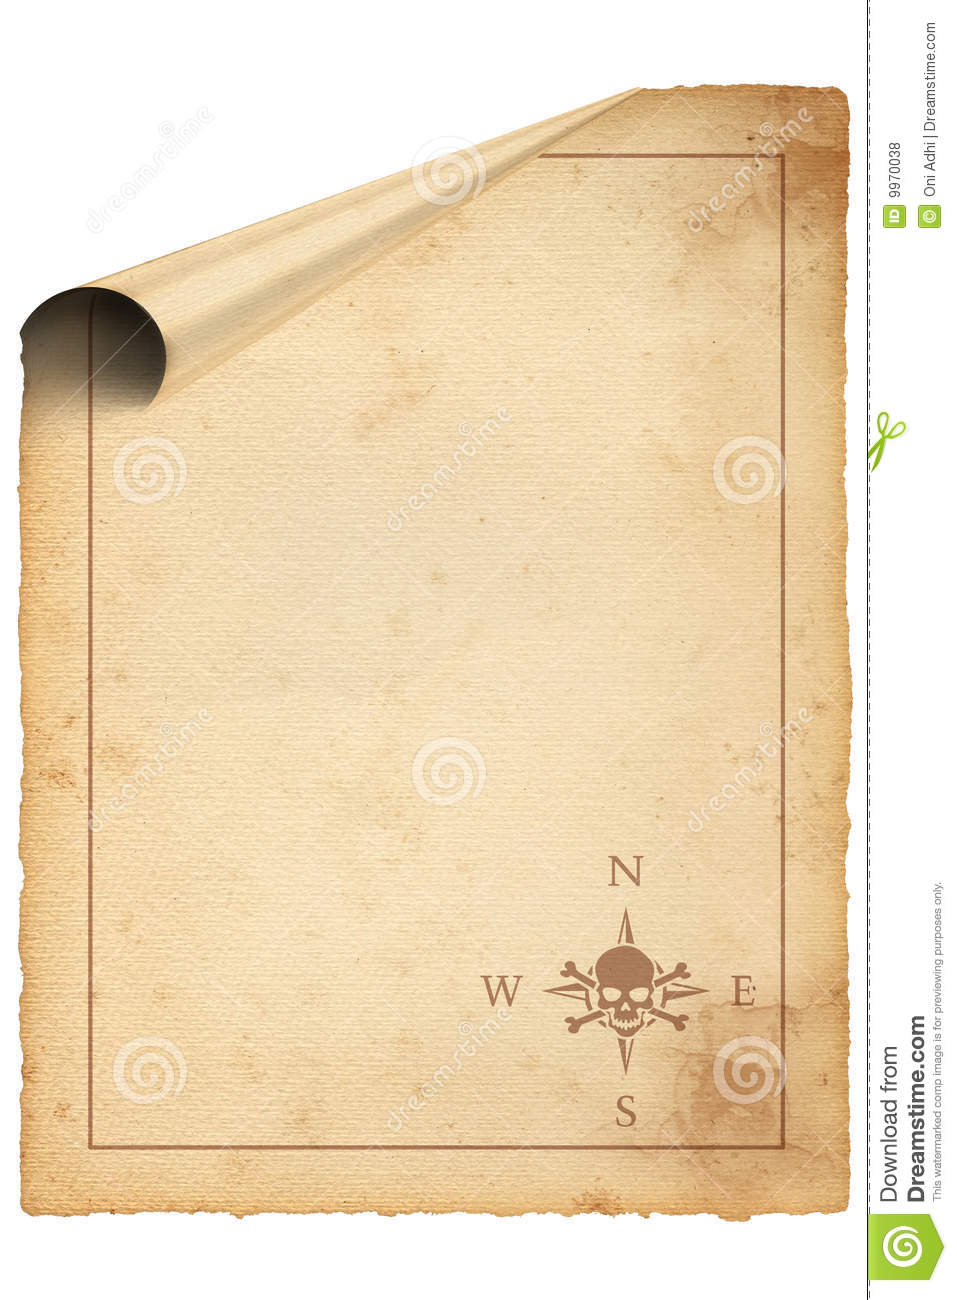 Blank Pirate Map With Skull Compass Royalty Free Stock Photos - Image: 9970038